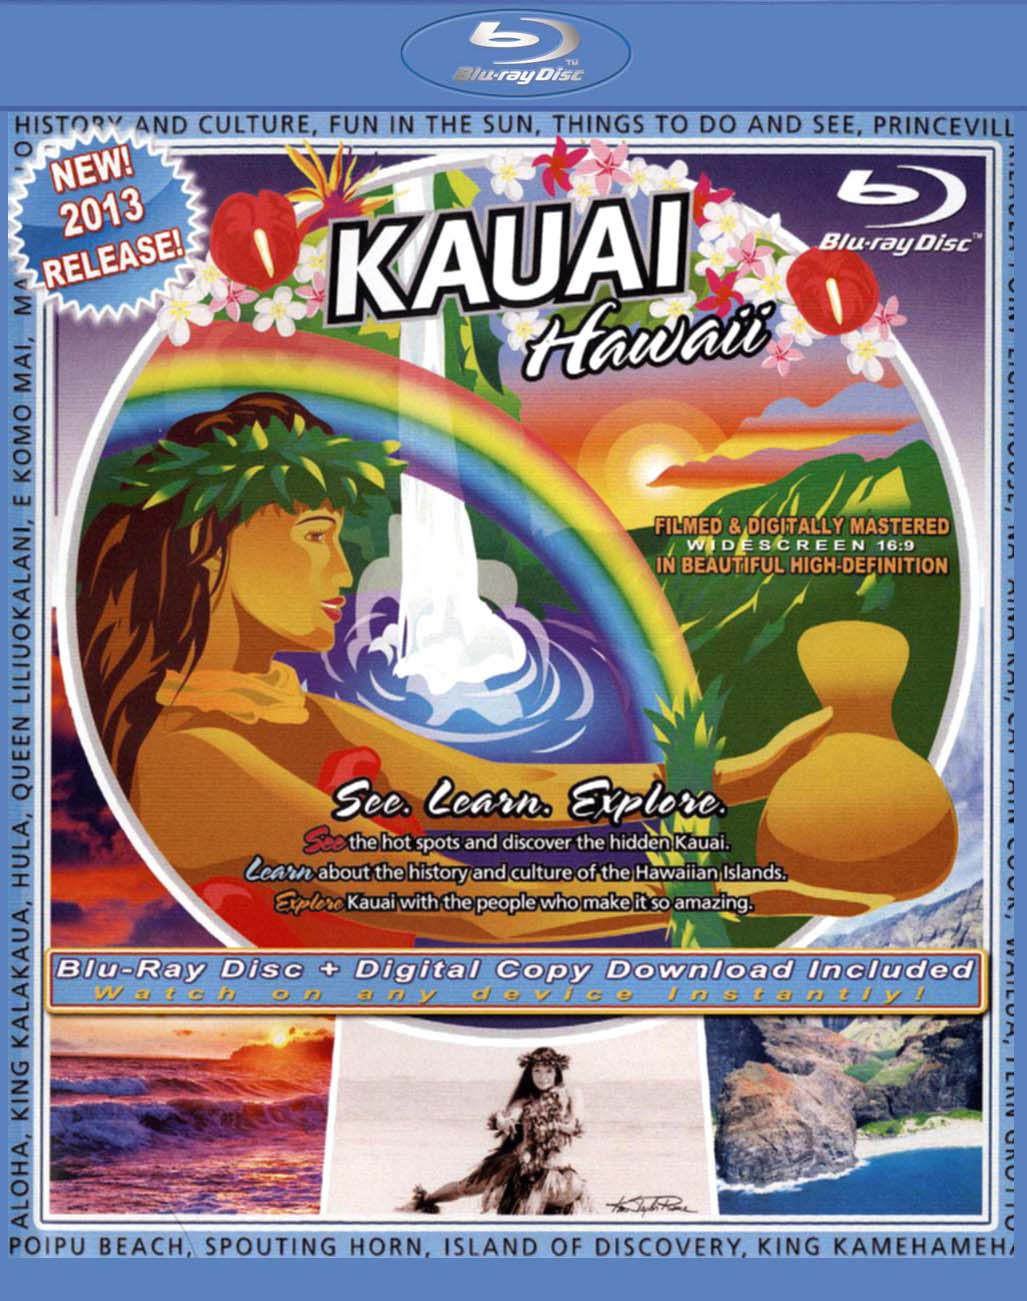 The Video Postcard of Kauai, Hawaii